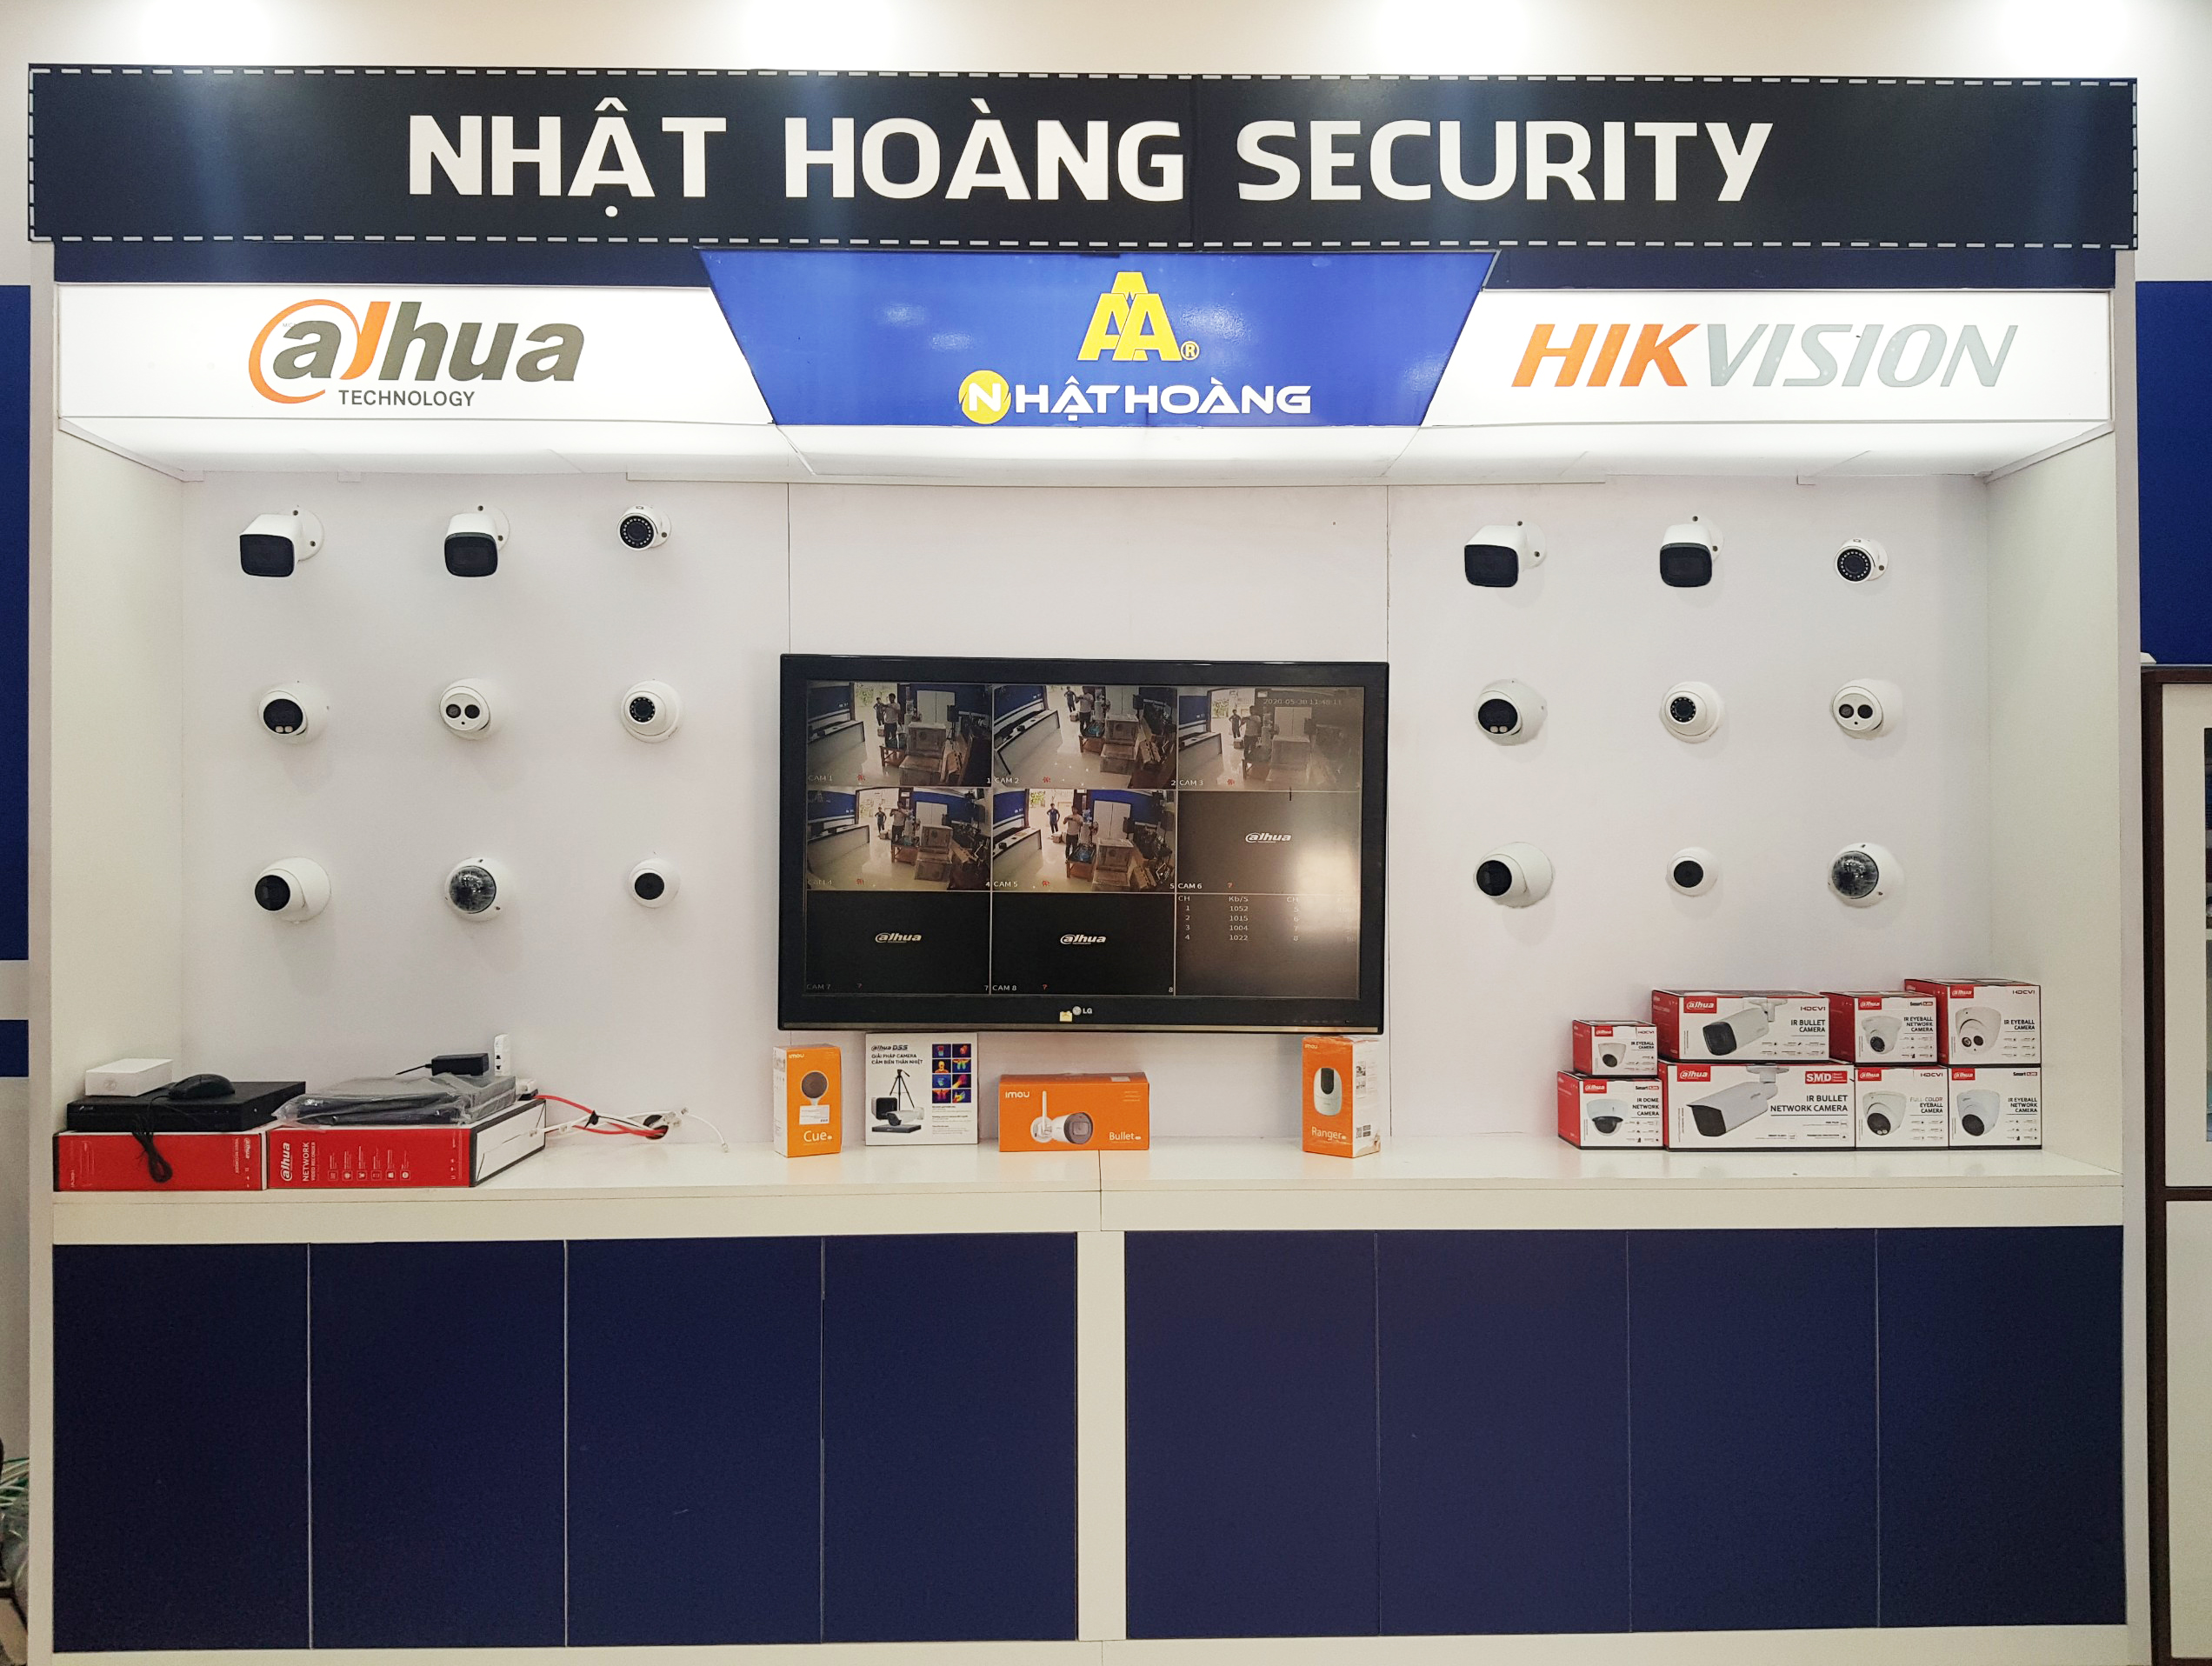 camera nhat hoang security